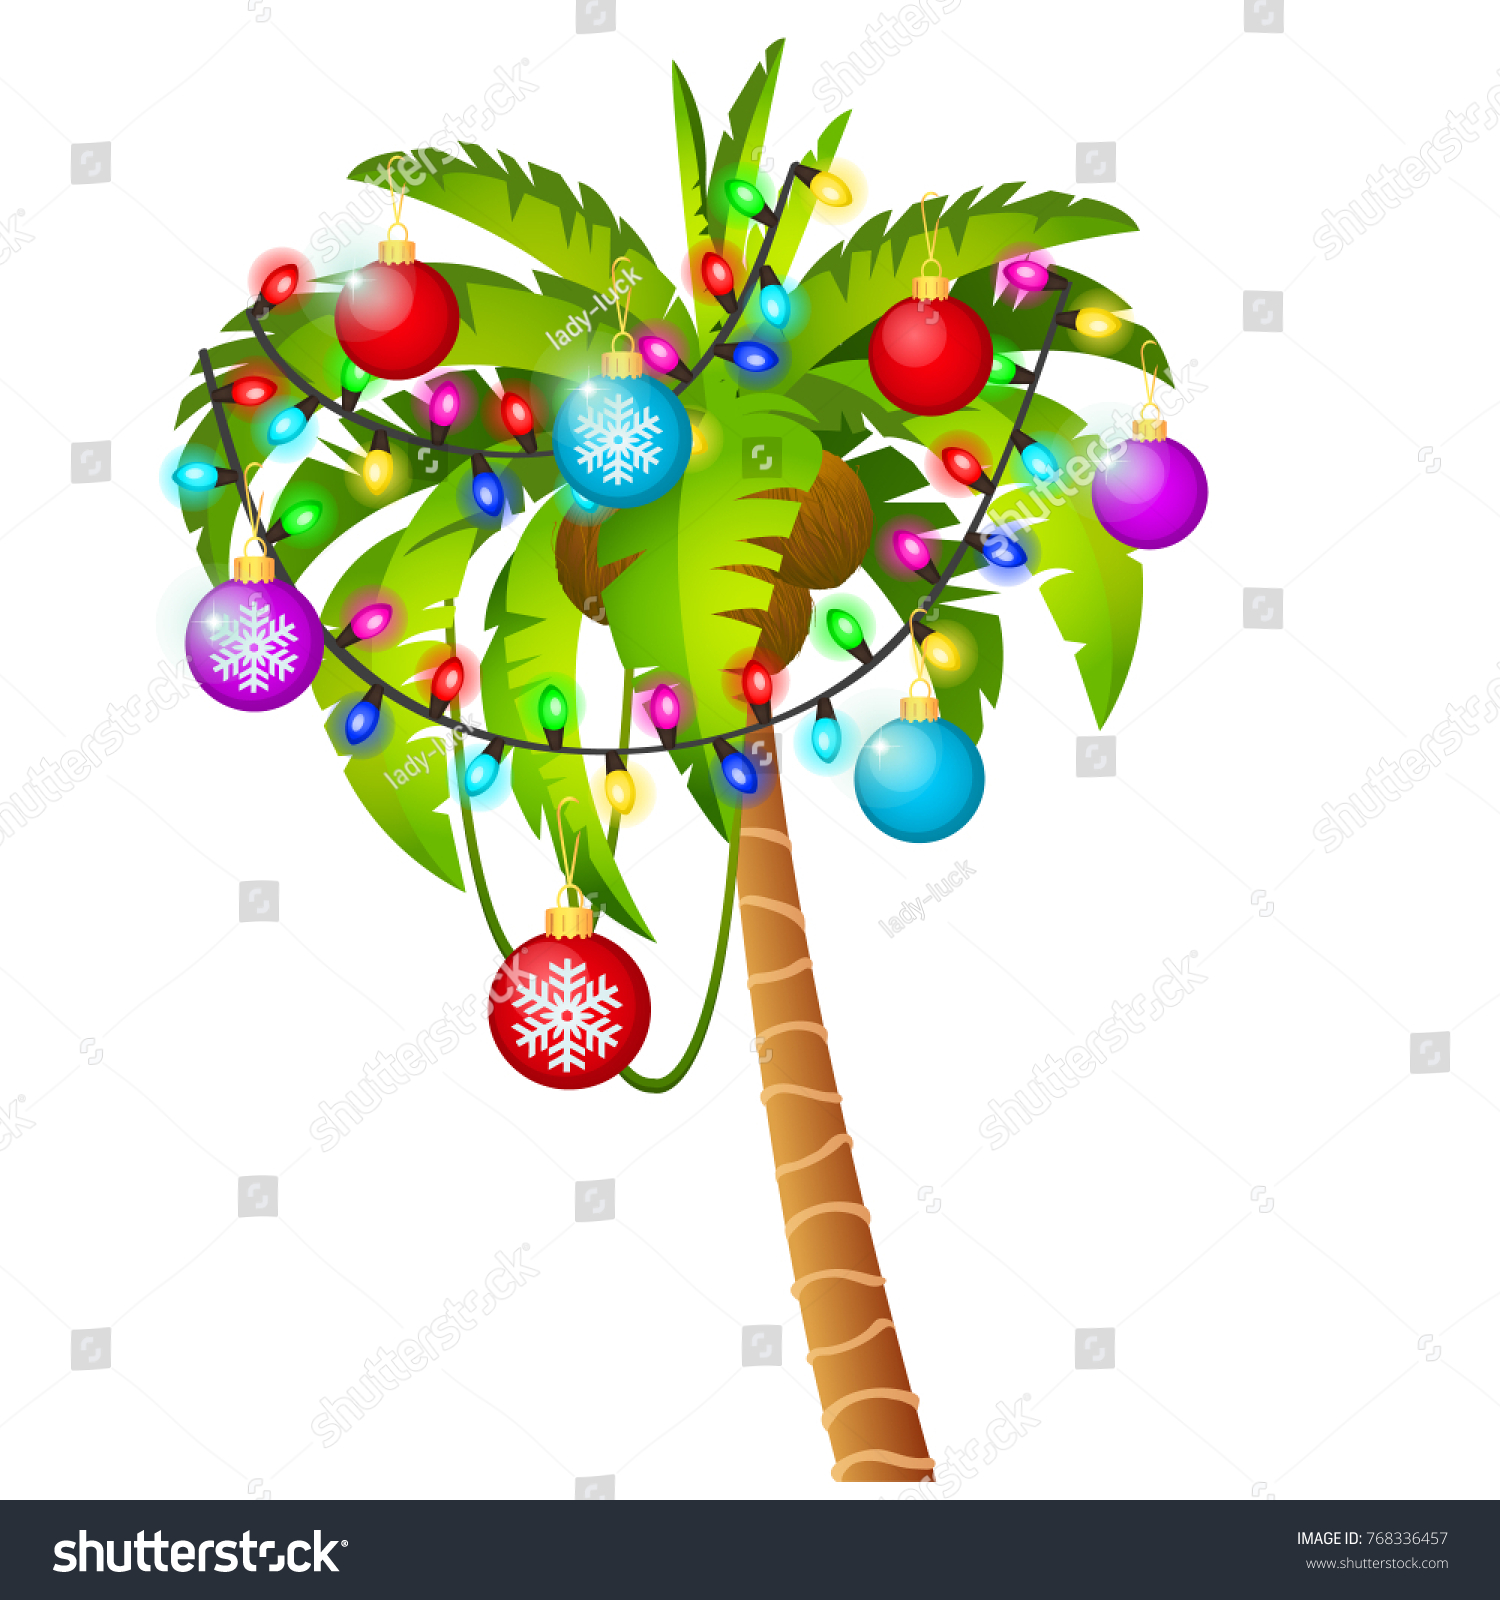 palm tree decorated with christmas toys garland colored baubles isolated on white background